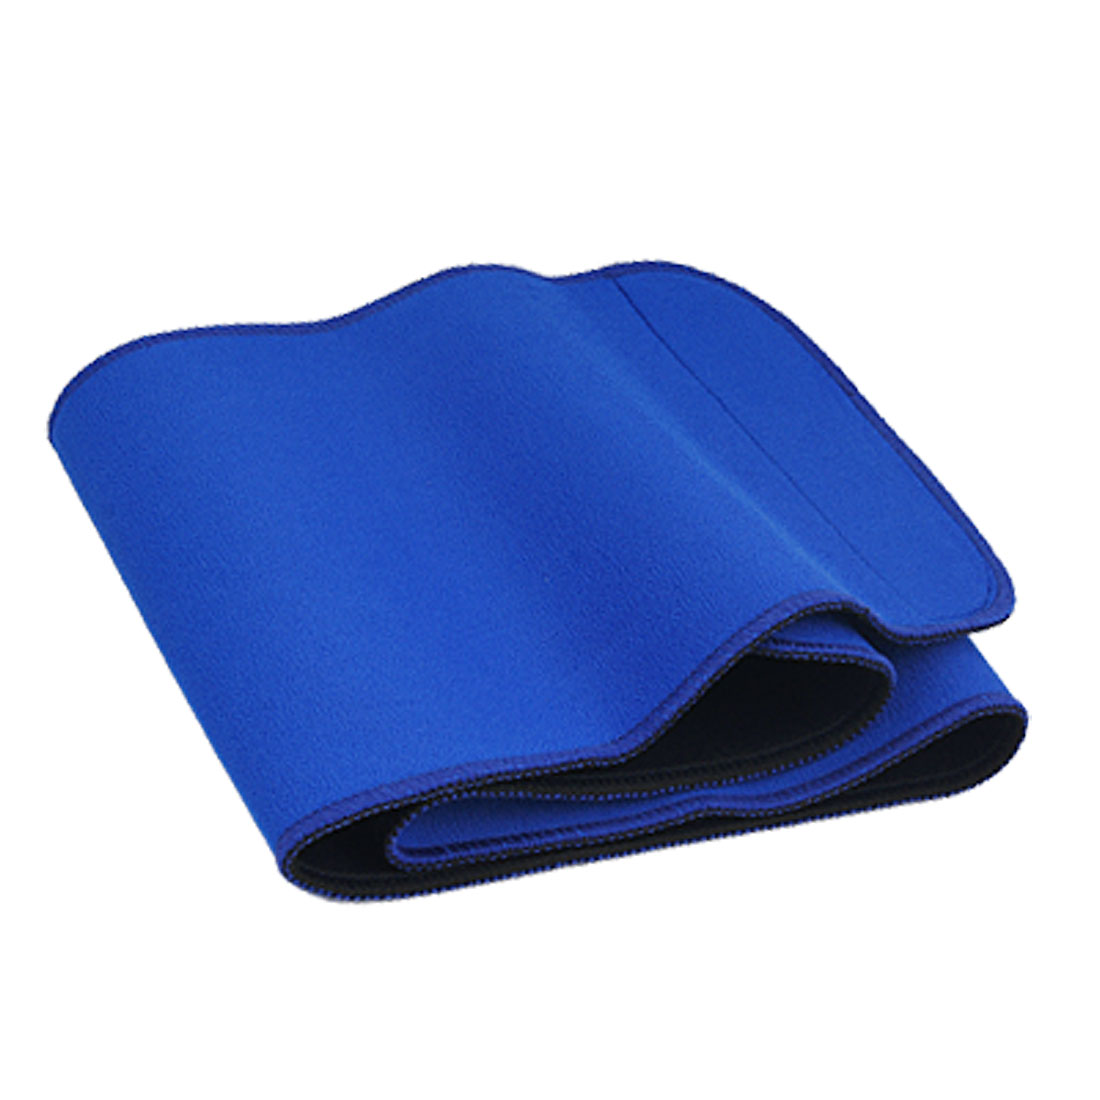 Blue Black Hook and Loop Fastener Adjustable Waist Support Wrapper